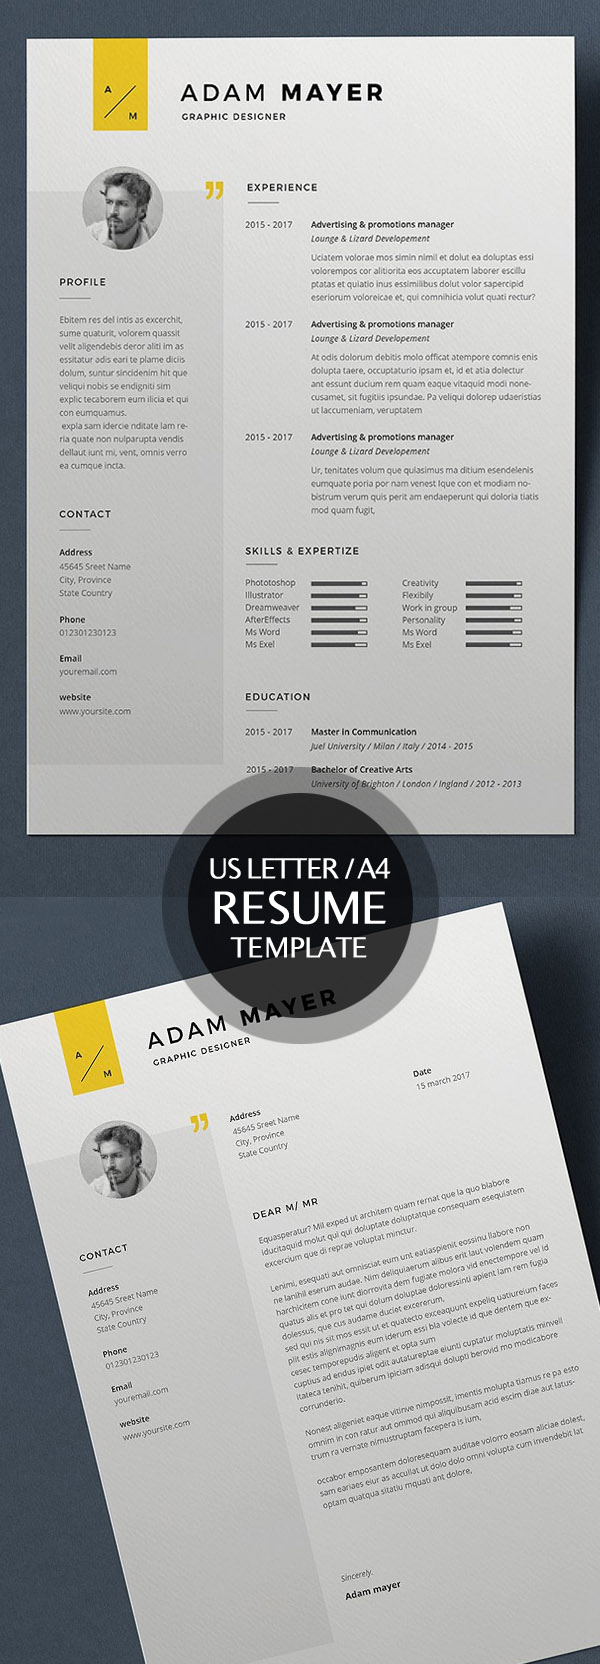 best minimal resume templates design graphic design junction 50 best minimal resume templates 3